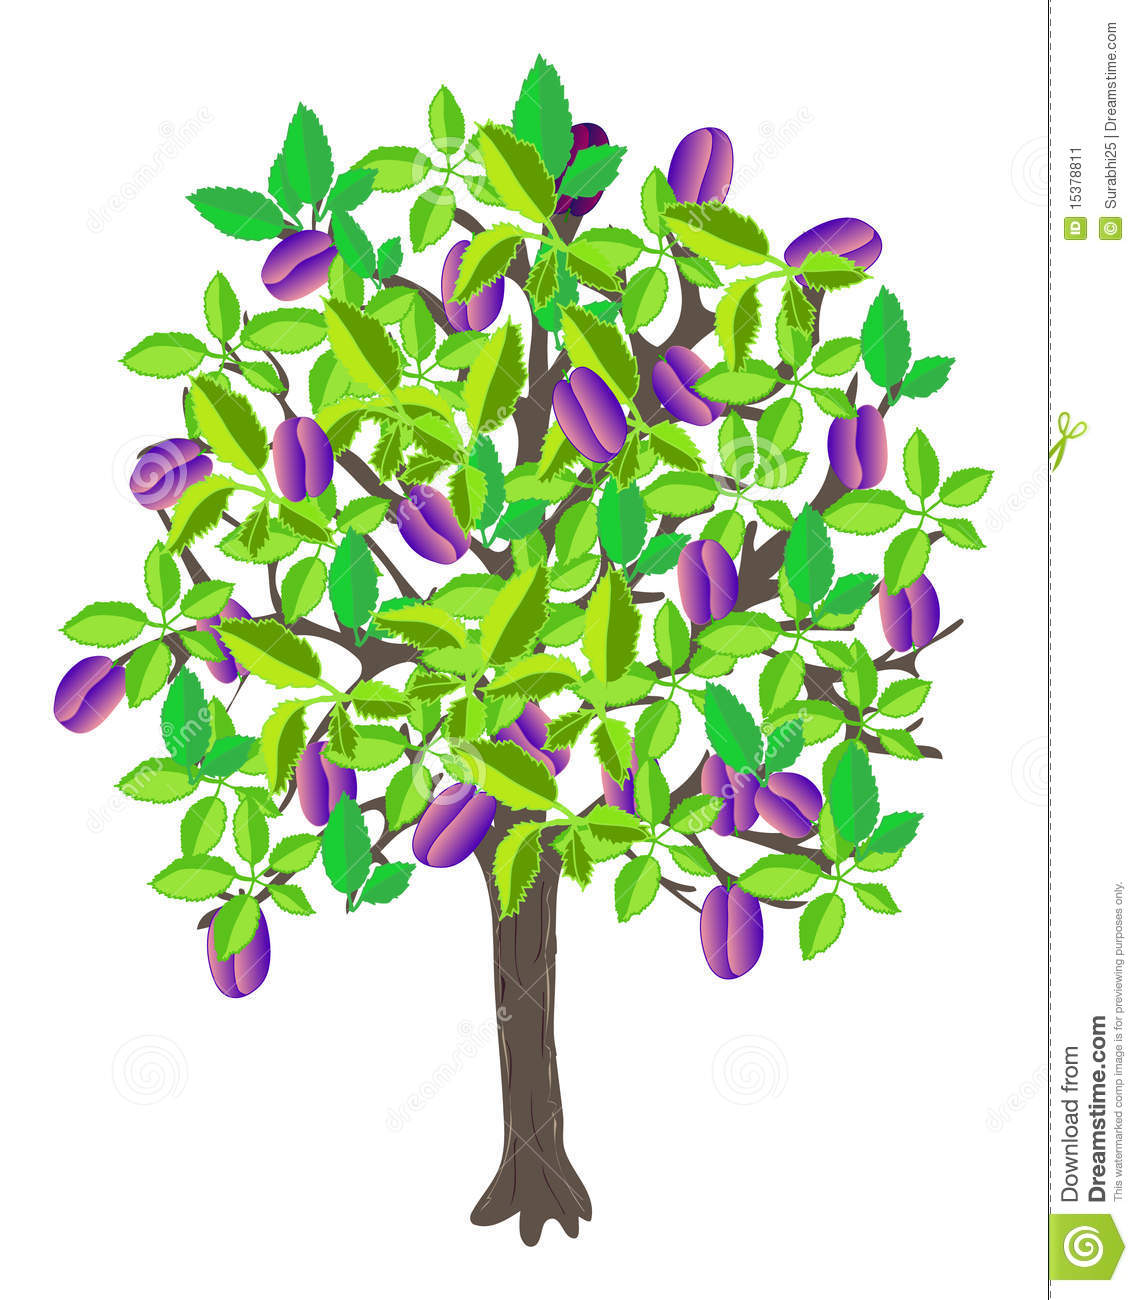 Plum trees clipart.